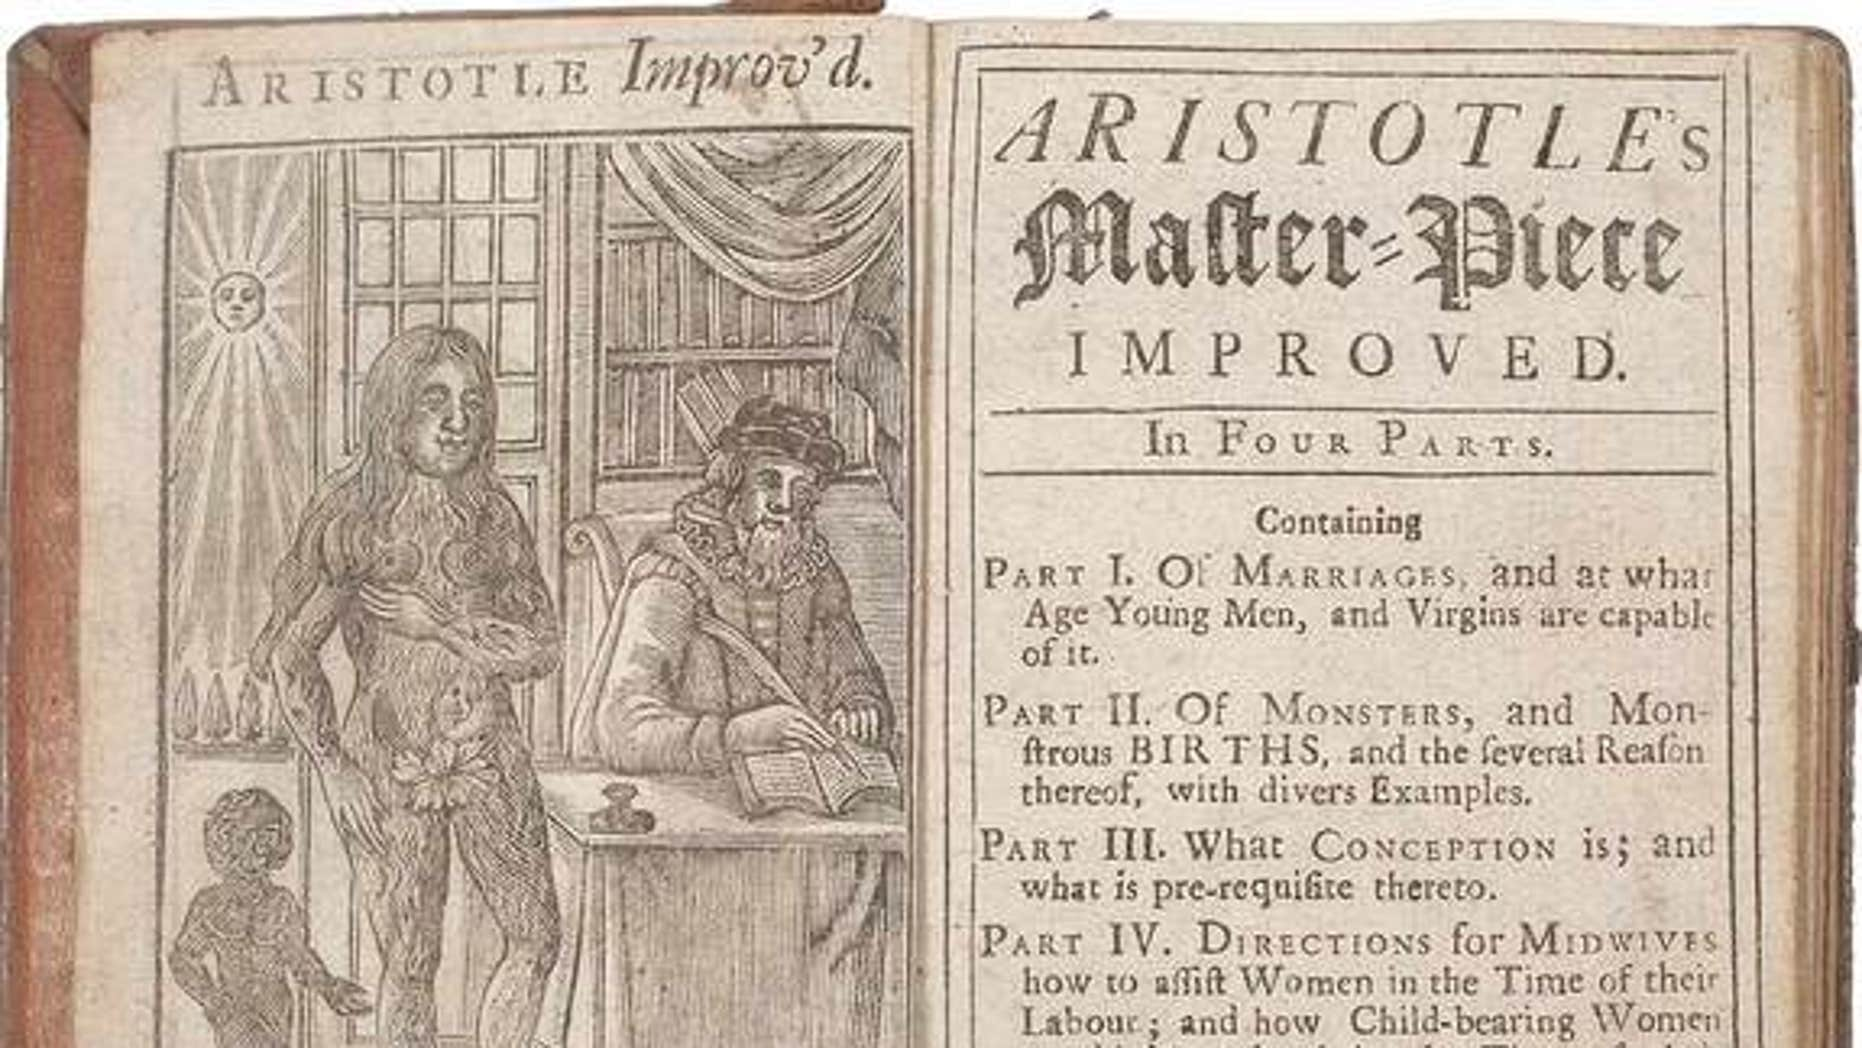 """The rare book up for auction at Lyon & Turnbull called """"Aristotle's Compleat Master-Piece"""" is actually a sex and pregnancy manual from the 17th century; it may have been banned in Britain."""